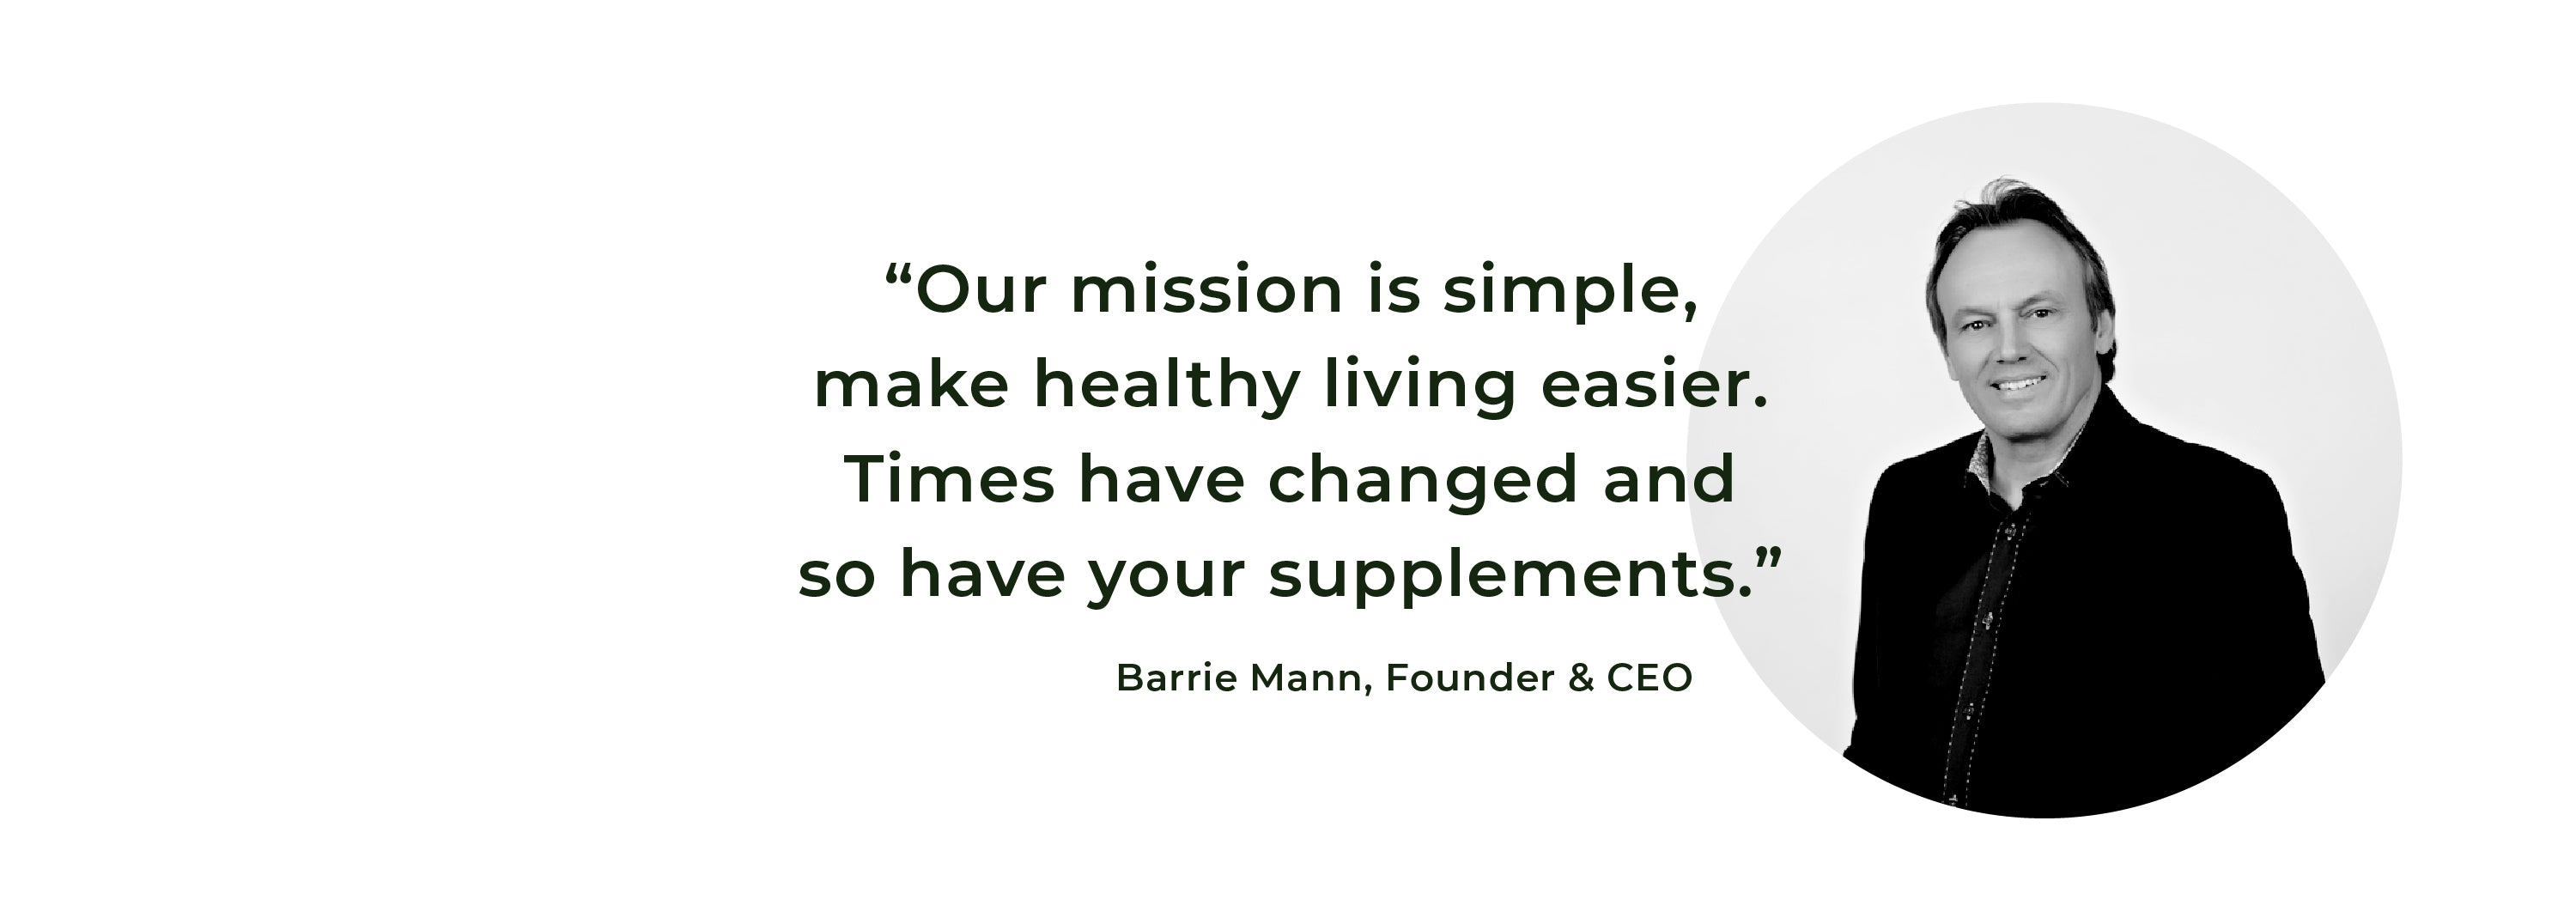 All Day Nutritionals CEO Barrie Mann